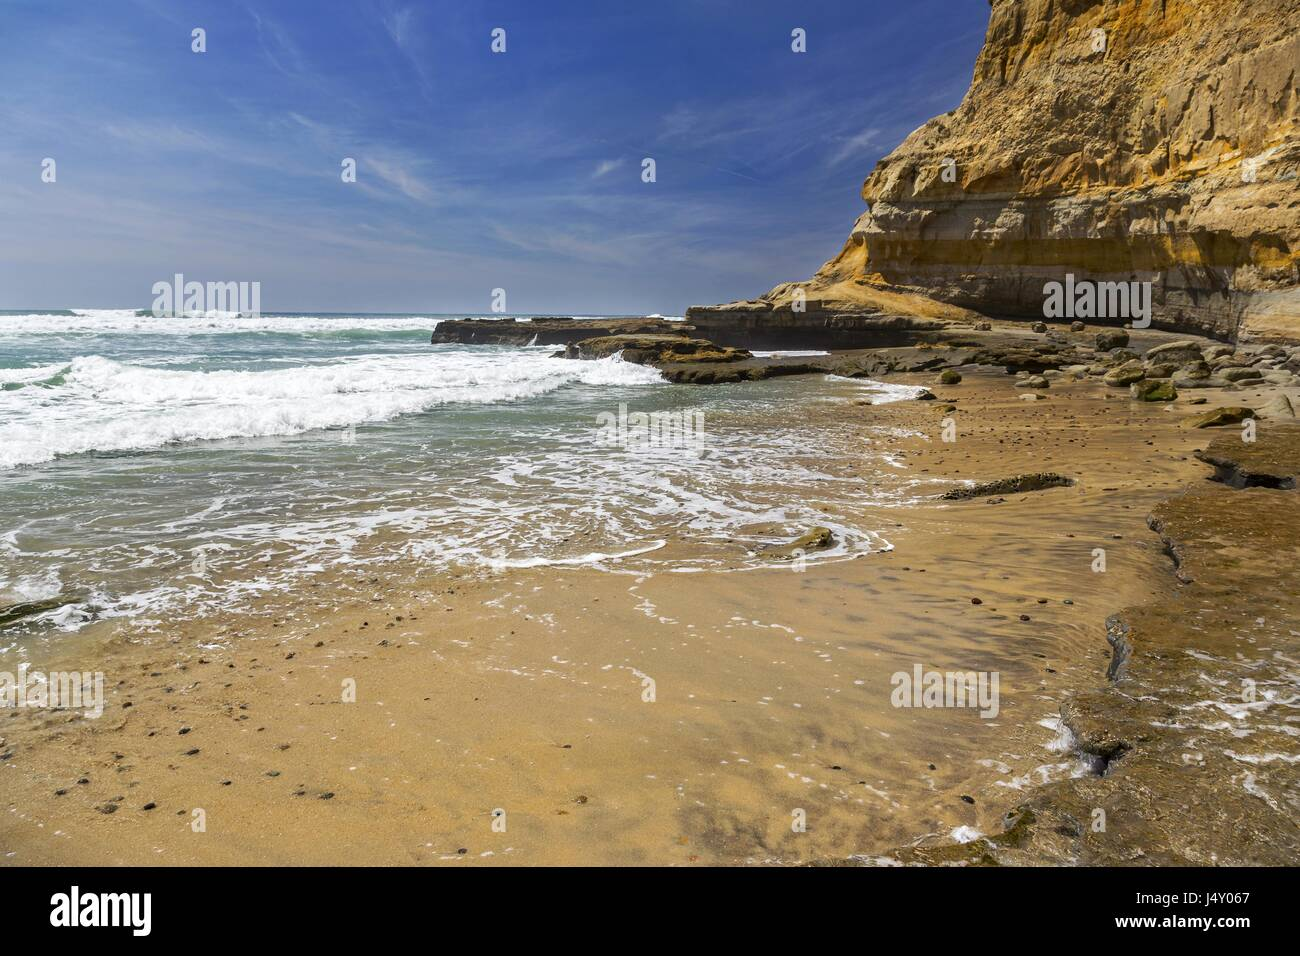 Flat Rock on Torrey Pines State Beach north of San Diego, California - Stock Image